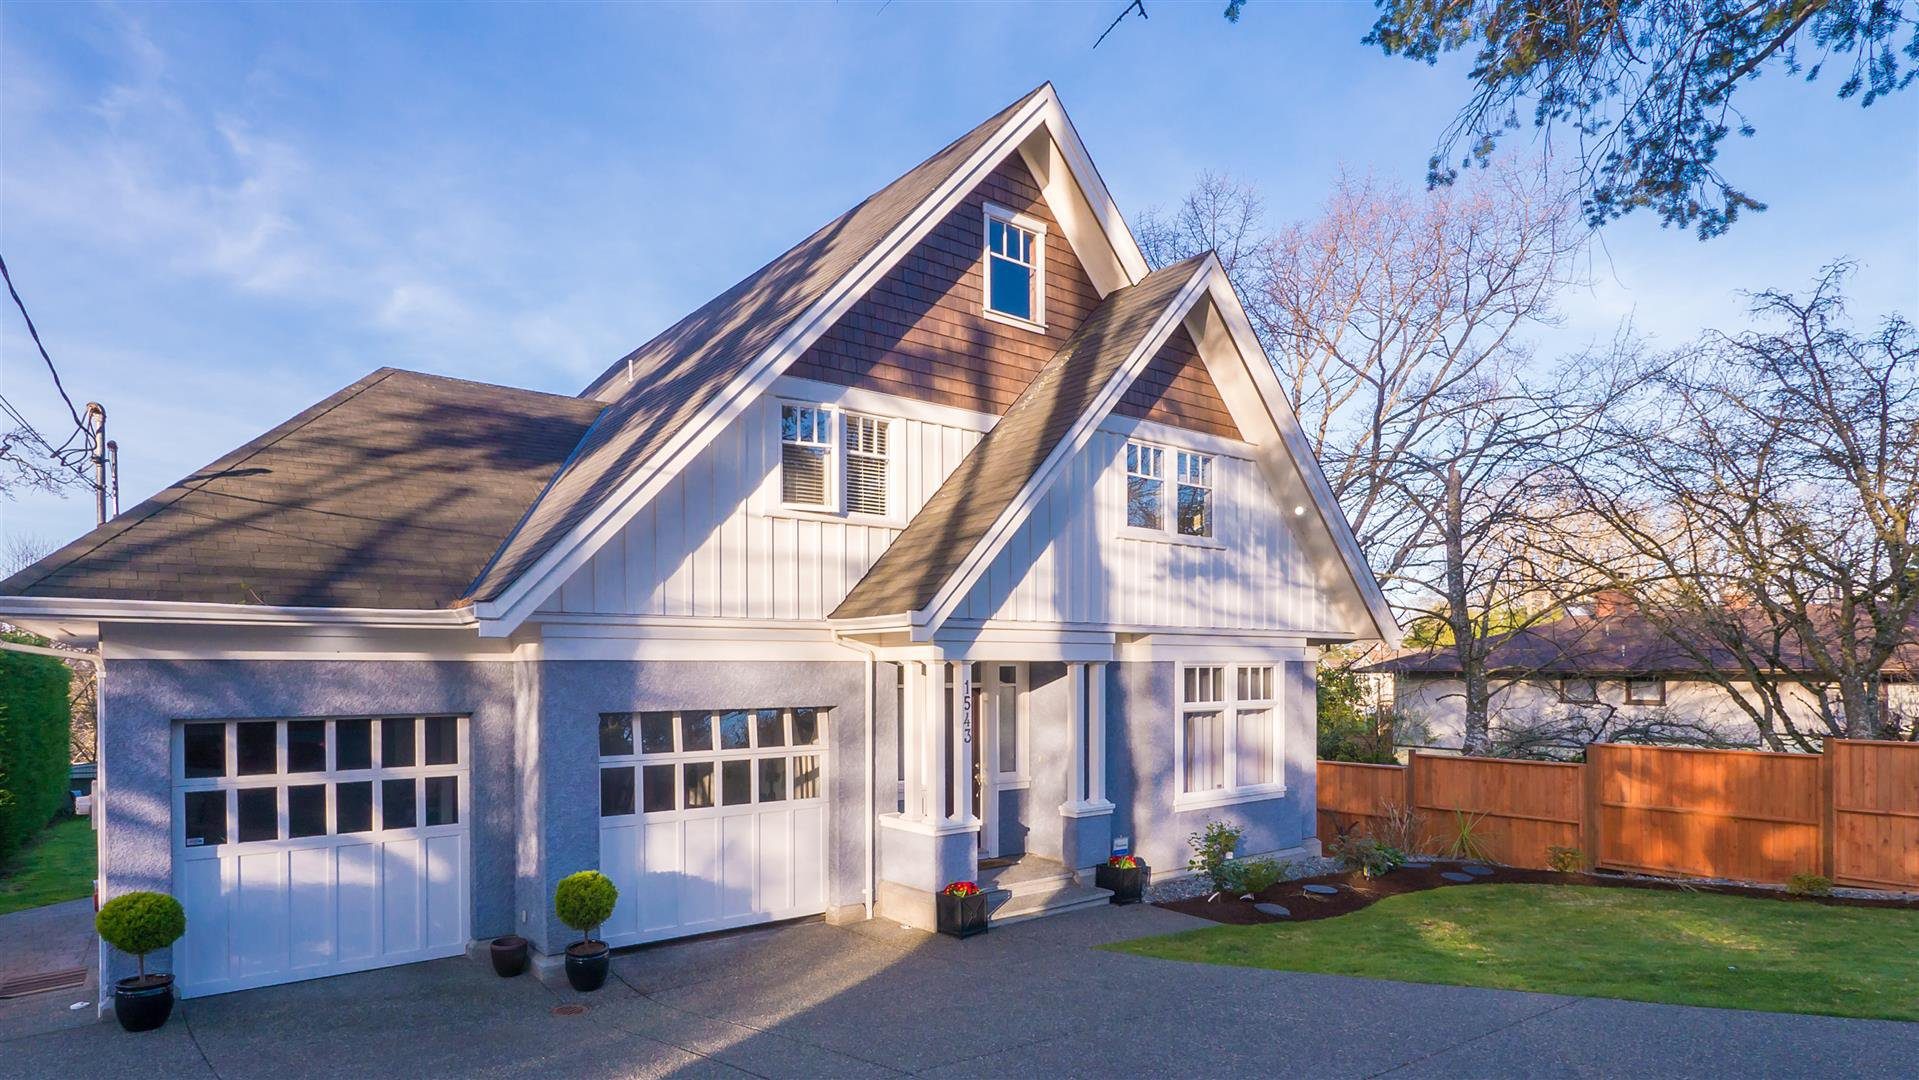 Main Photo:  in VICTORIA: SE Mt Doug Single Family Detached for sale (Saanich East)  : MLS®# 406999